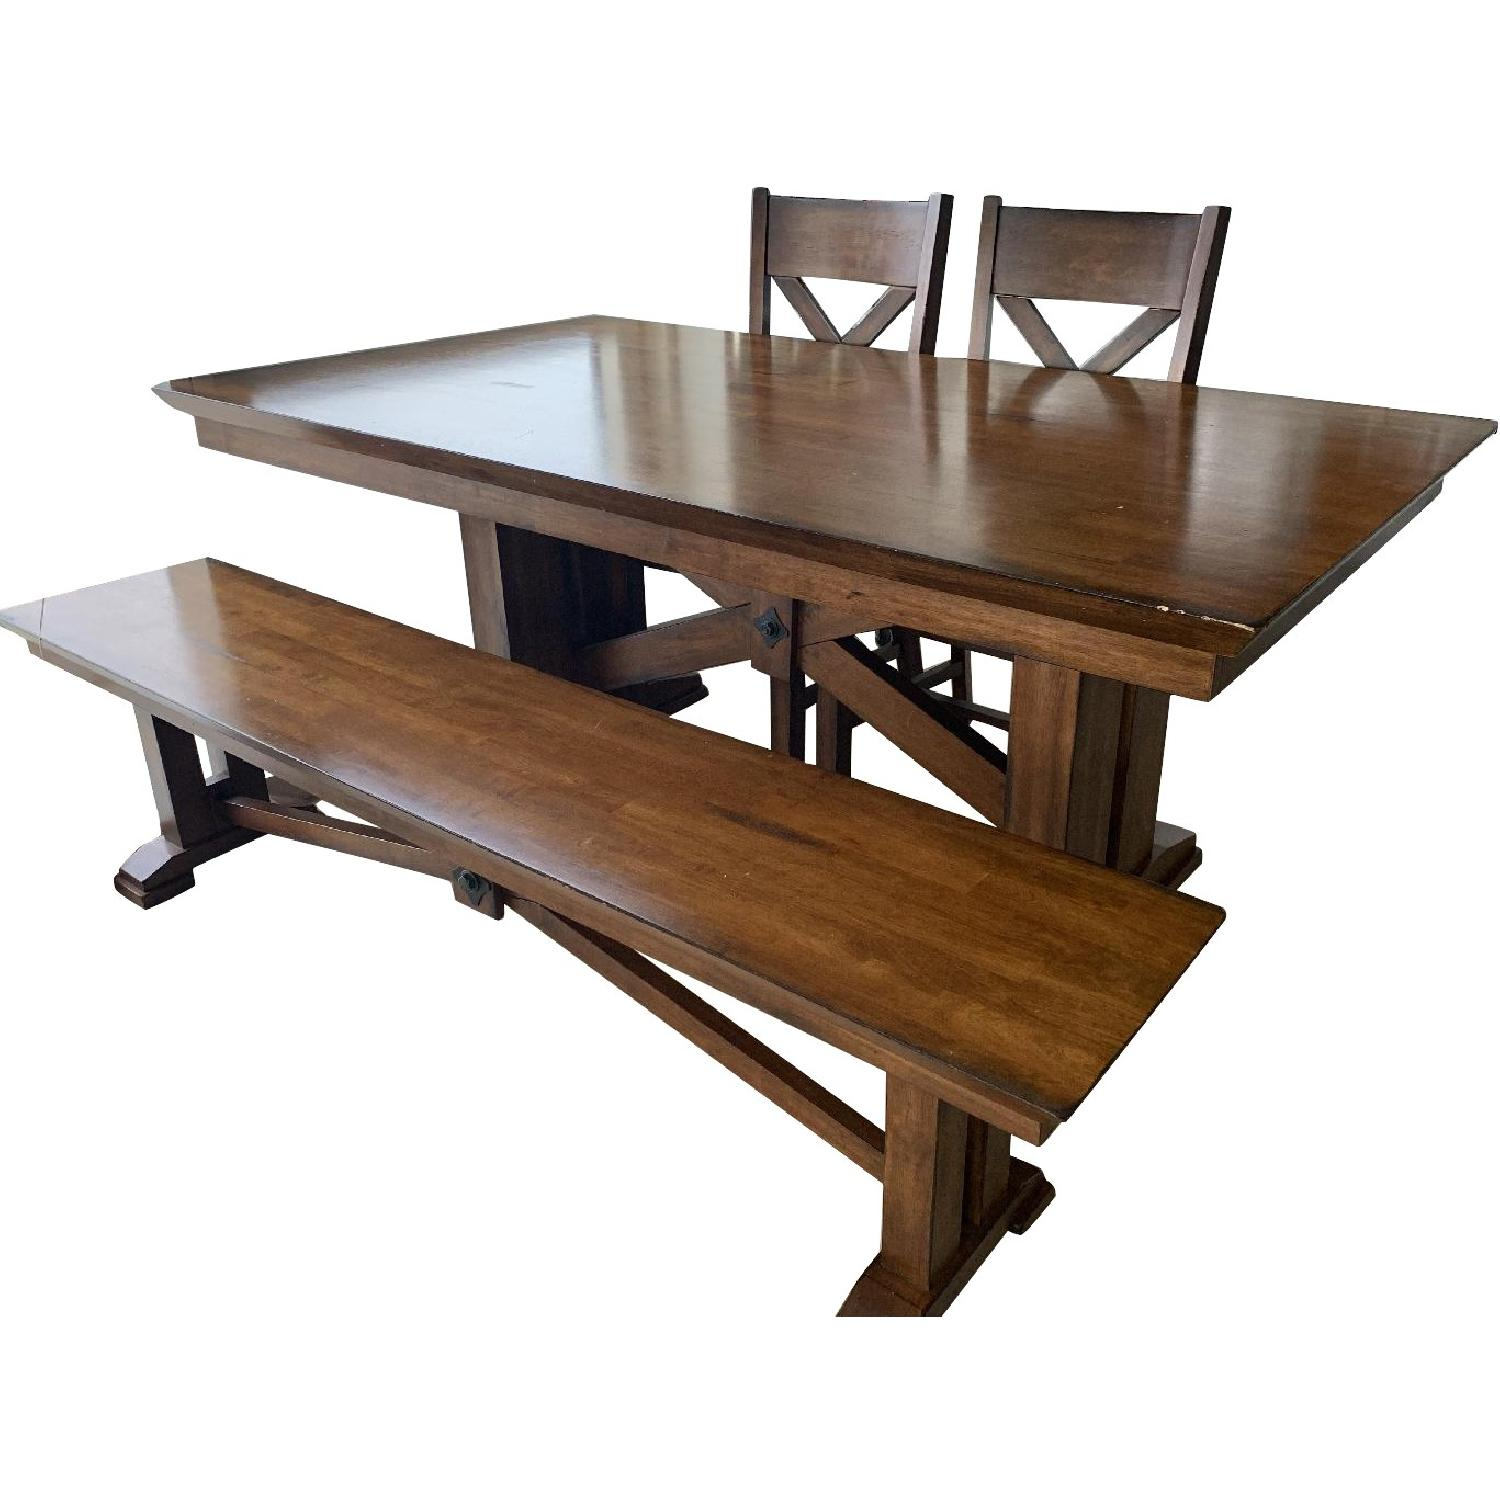 World Market Solid Wood Dining Table w/ 1 Bench + 2 Chairs - image-0